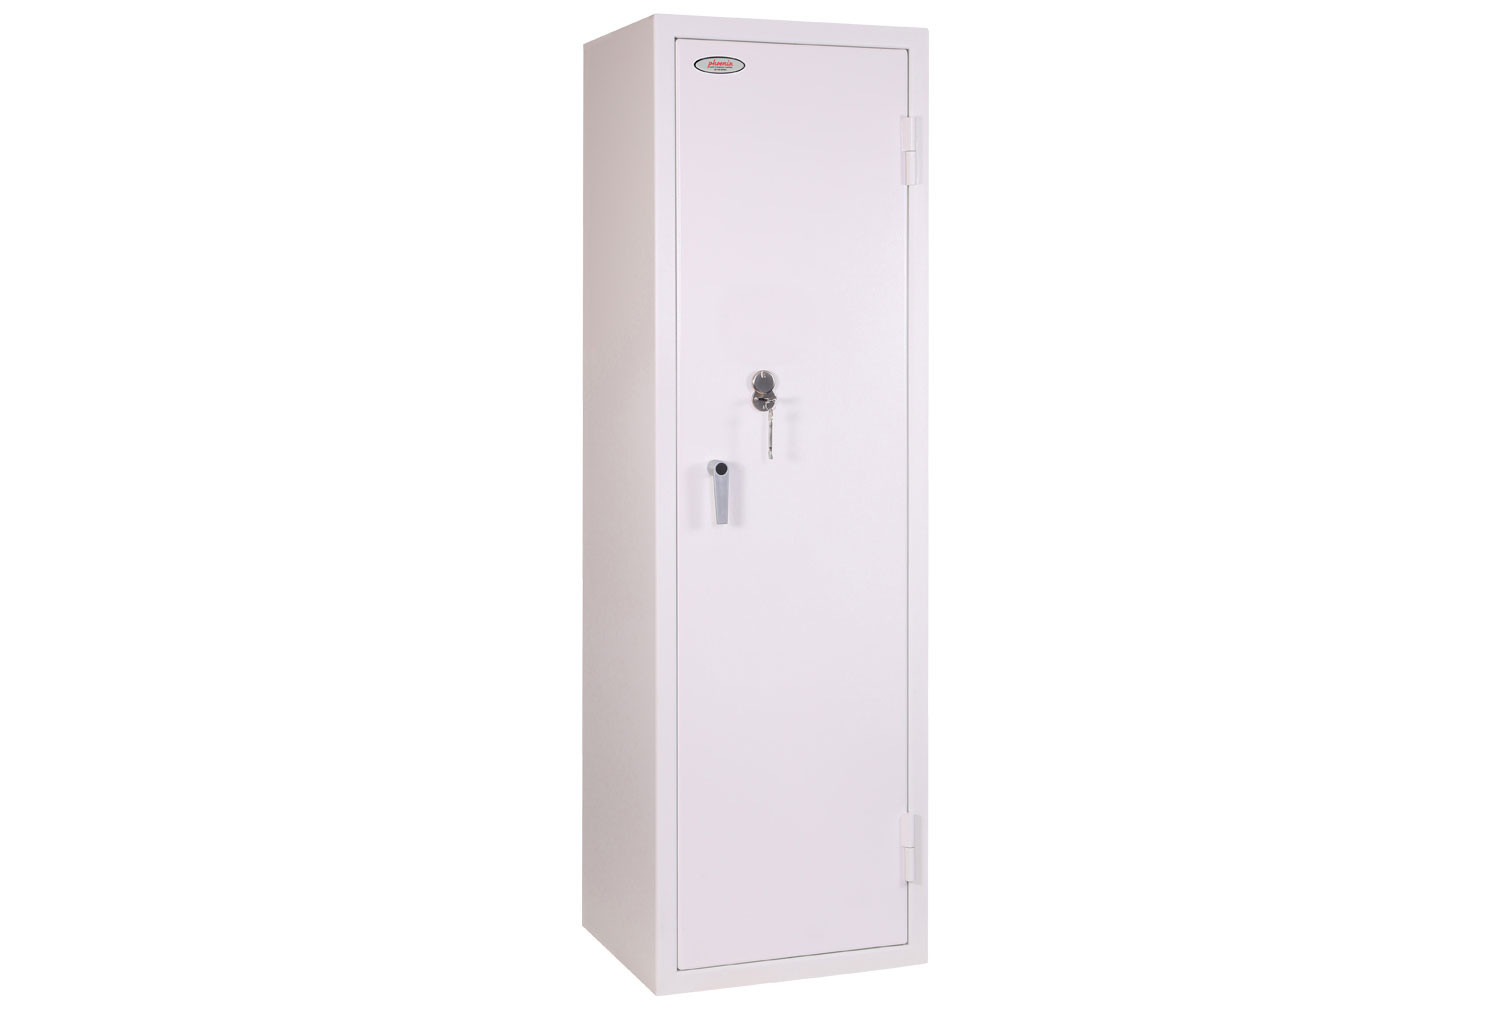 Phoenix Securstore SS1164K Security Safe With Key Lock (457ltrs)